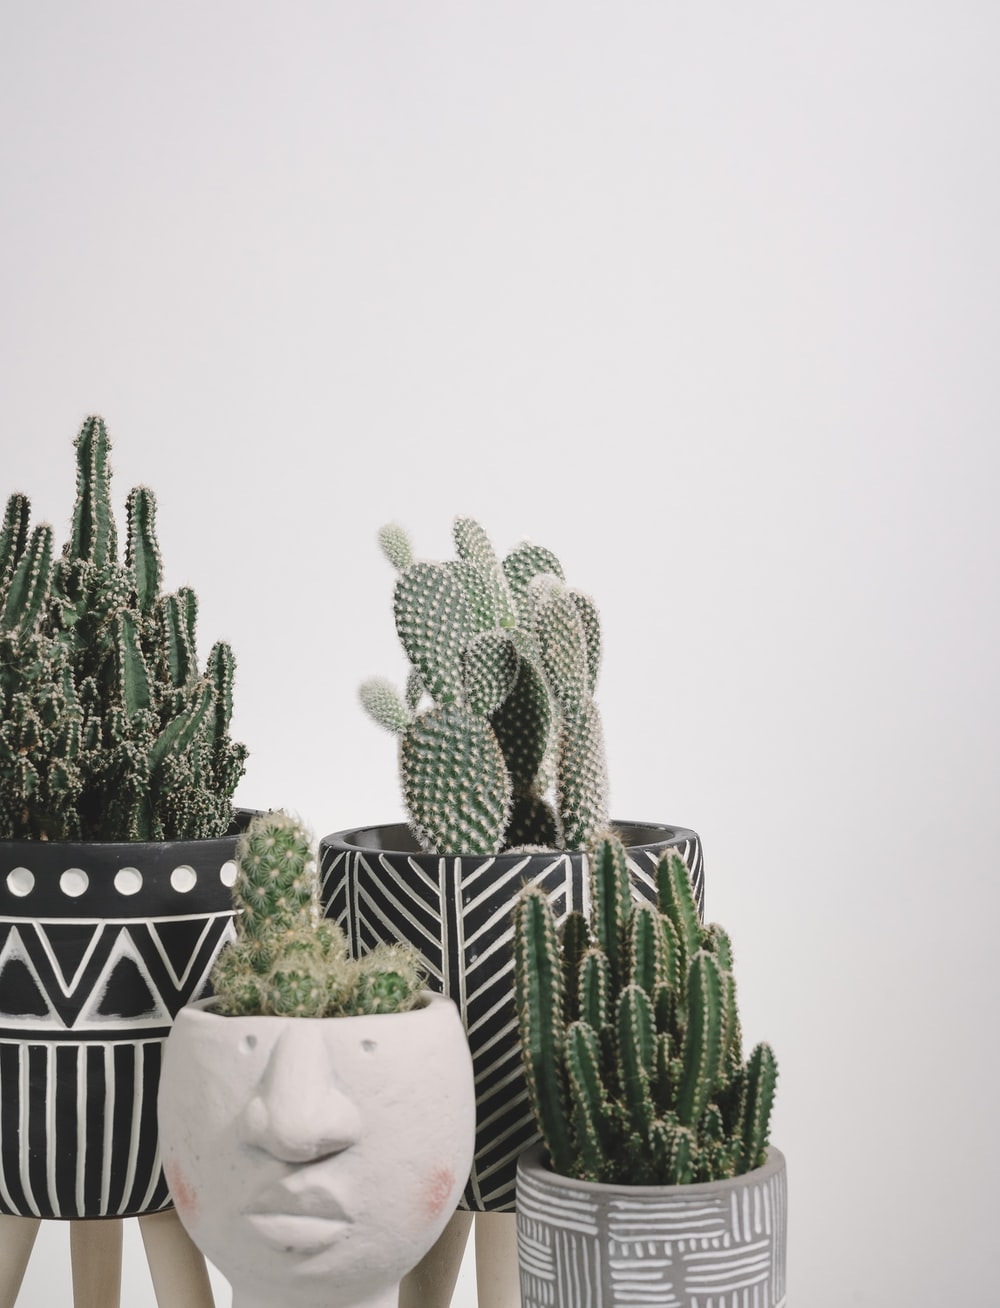 green cactus plants on white and black checkered table